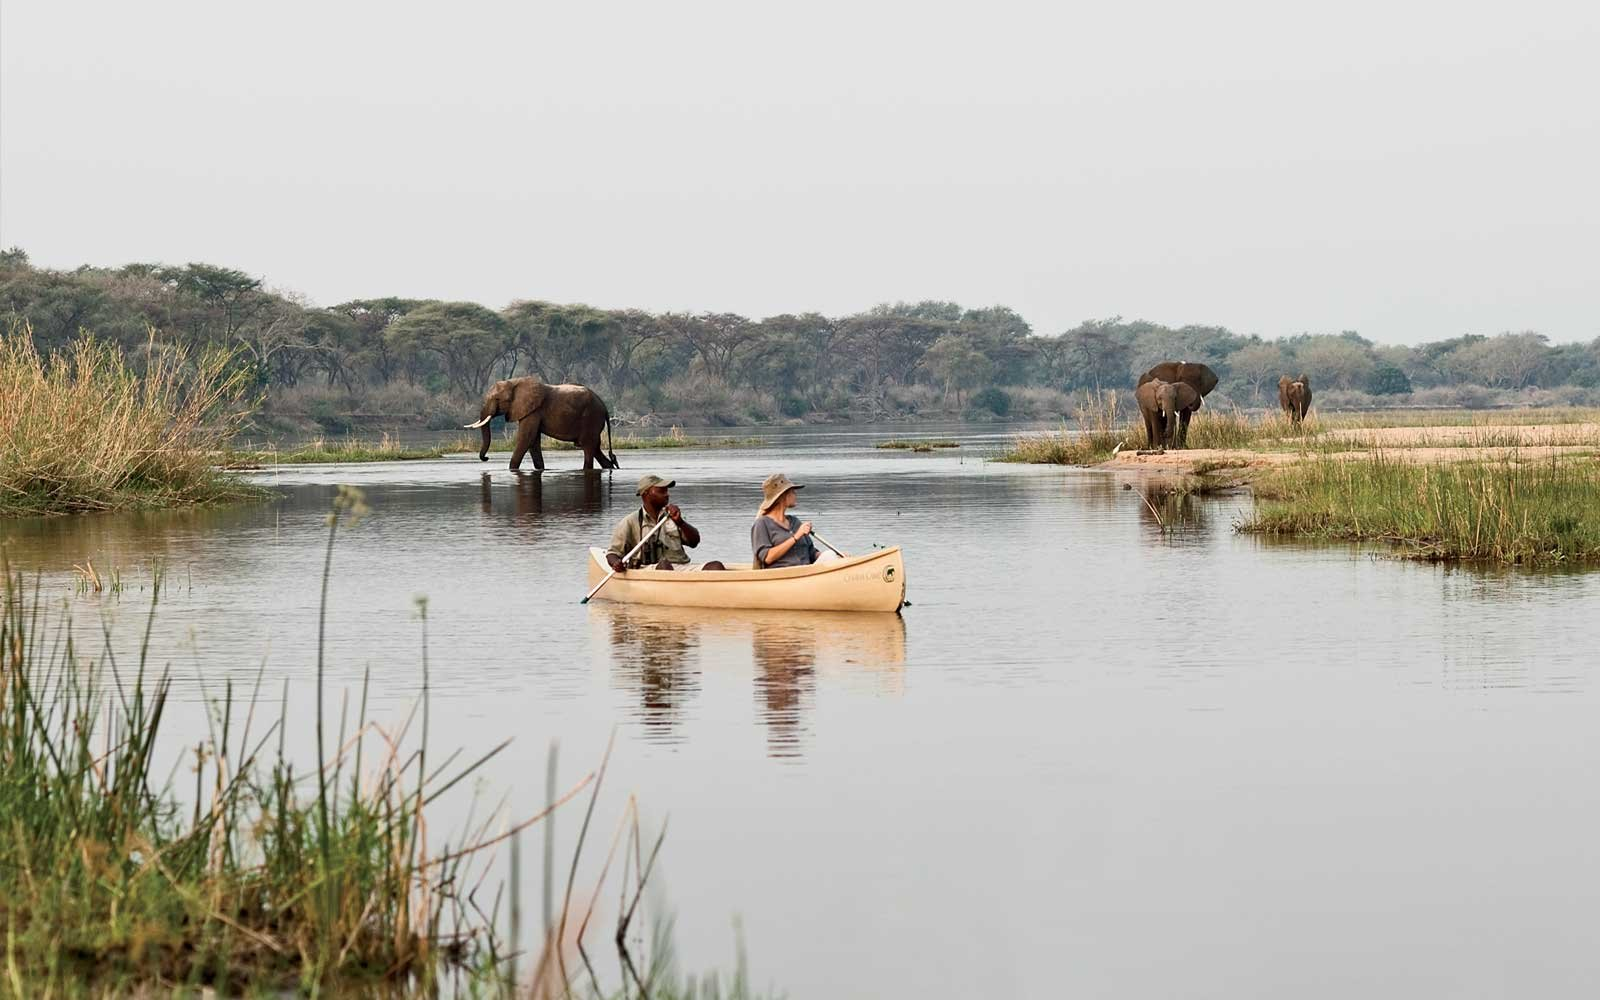 Safari in Zambia